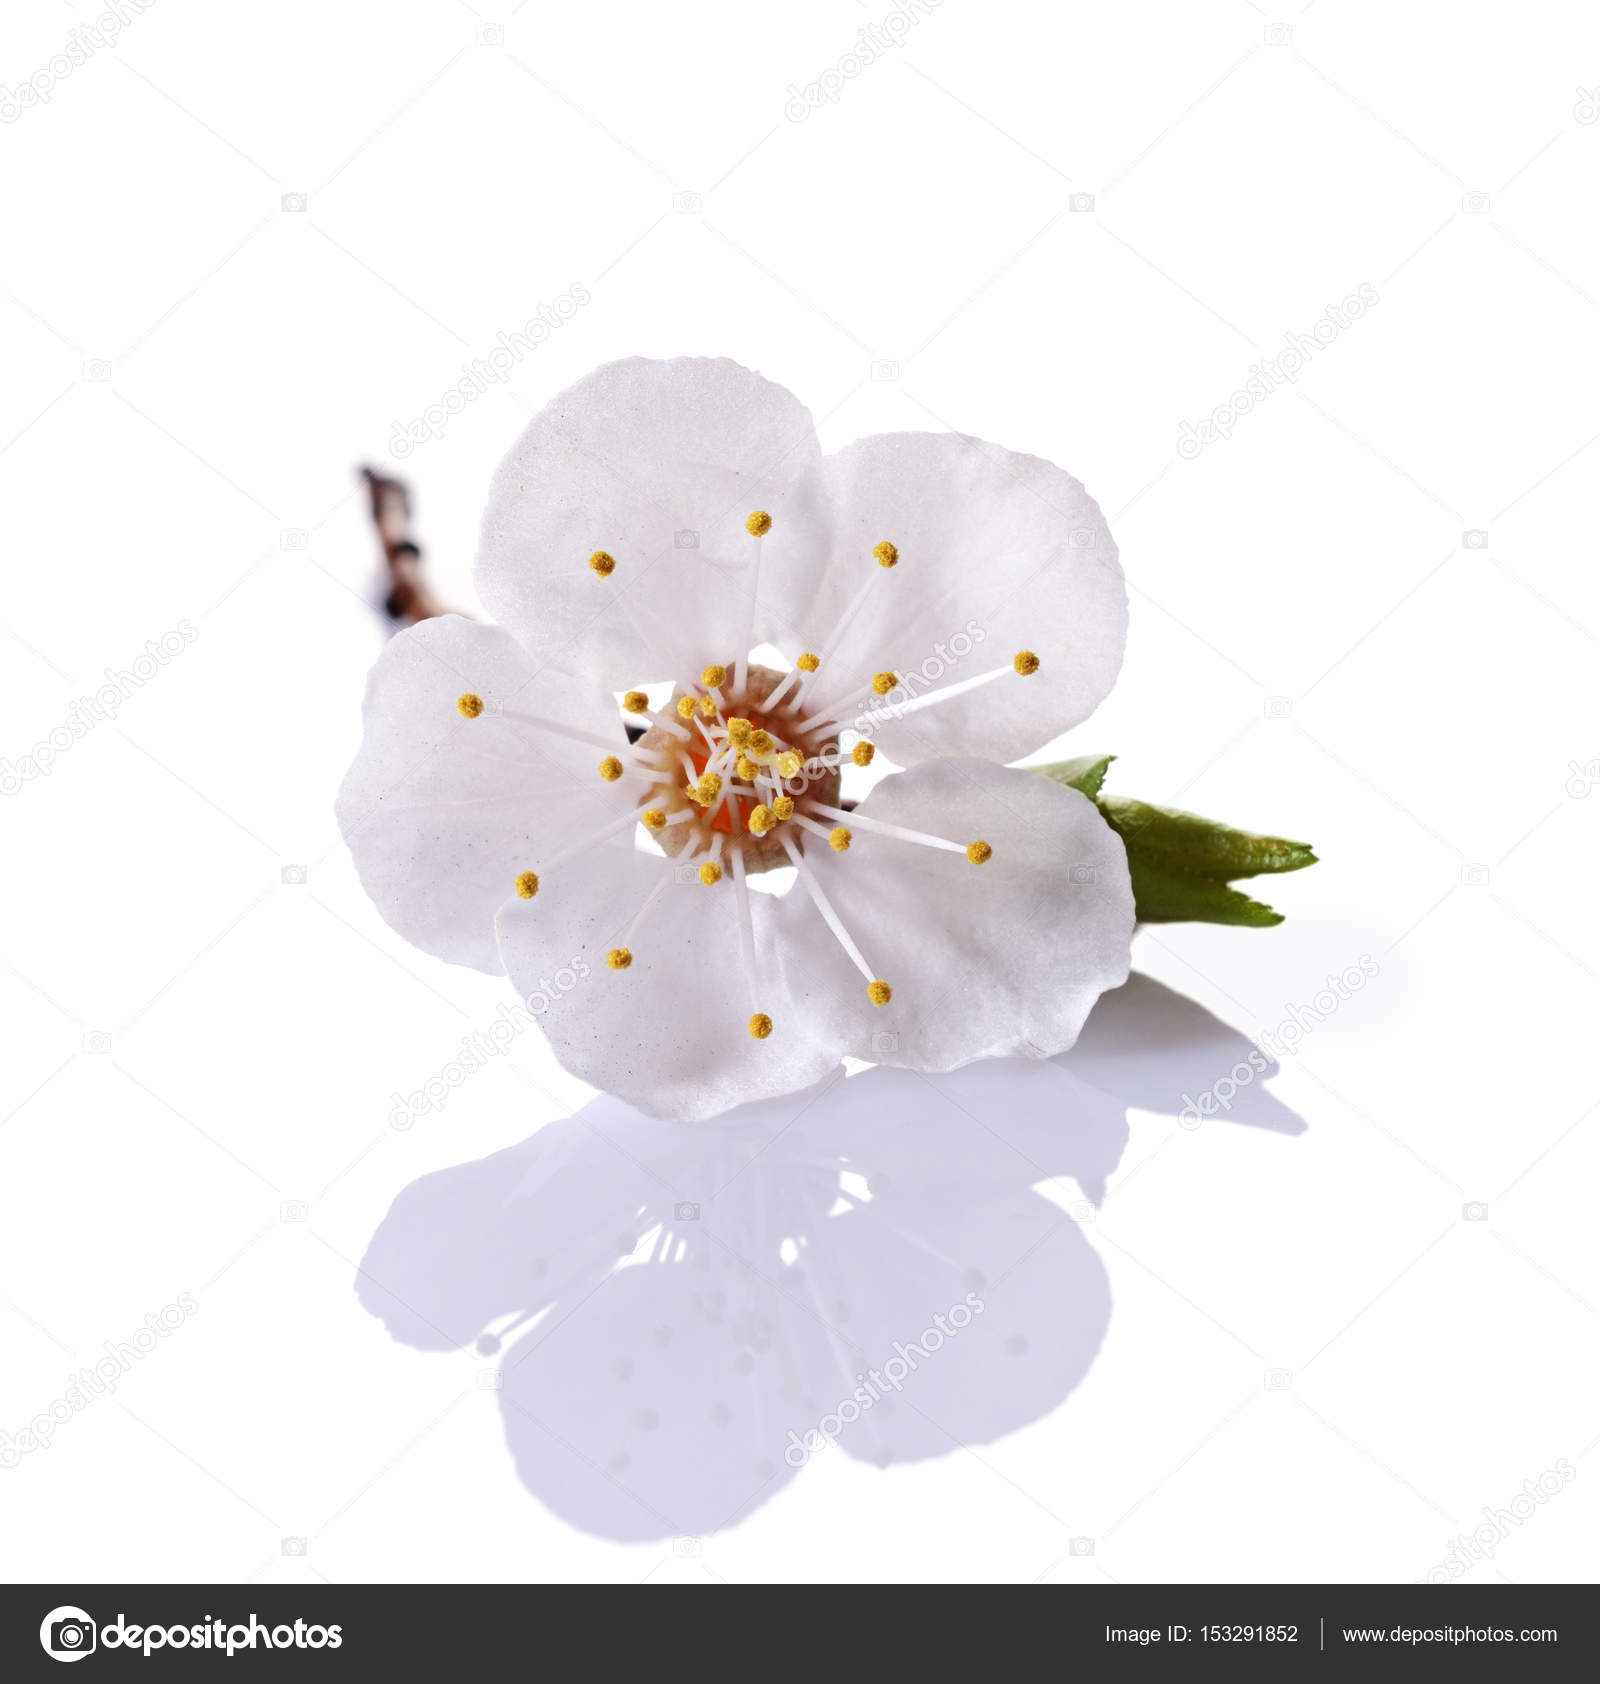 Spring cherry blossom branch with single white flower stock photo spring cherry blossom branch with single white flower stock photo mightylinksfo